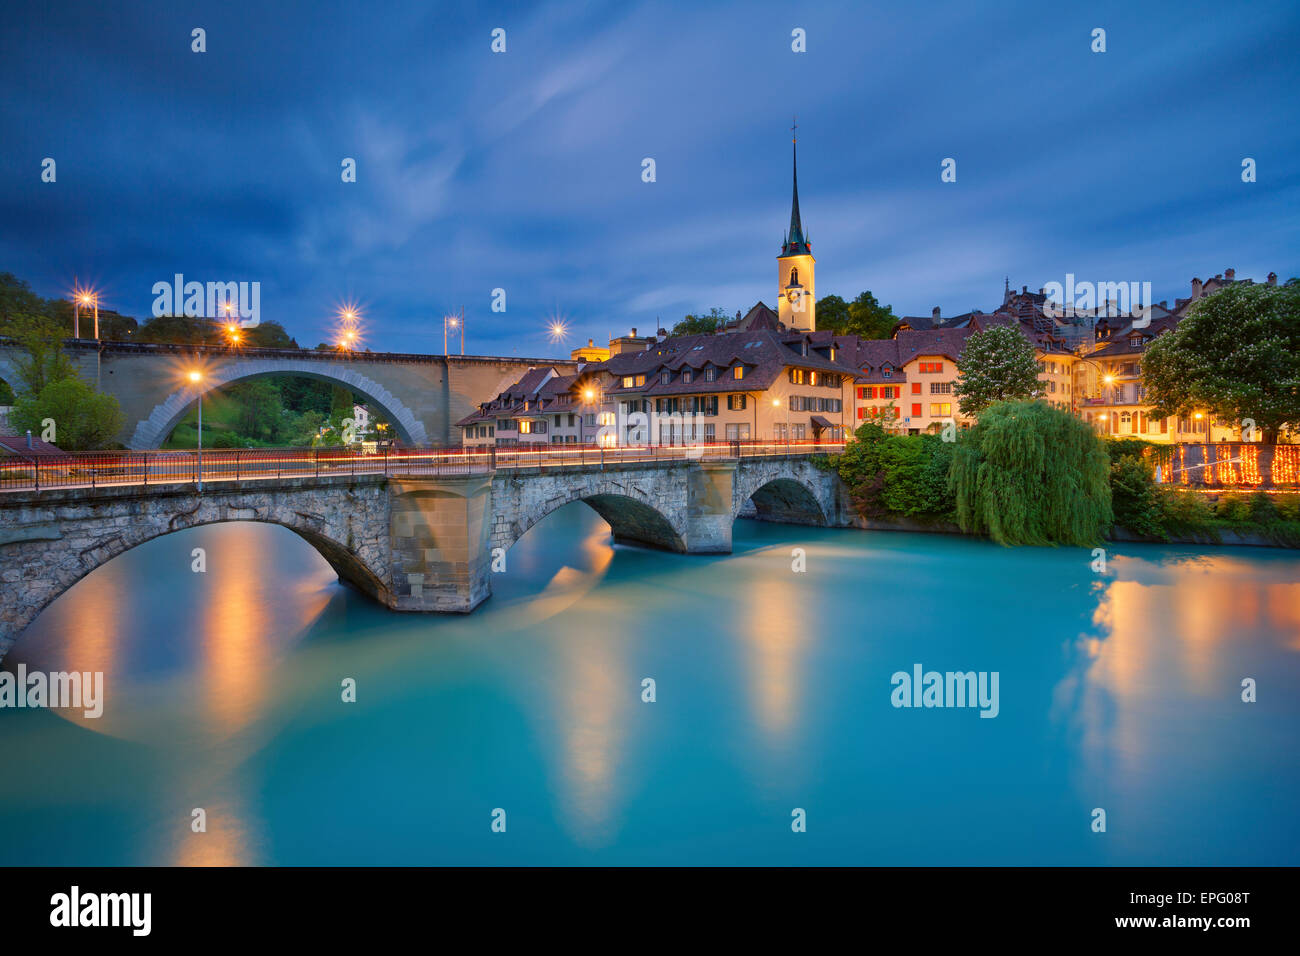 Bern. Image of Bern, capital city of Switzerland, during twilight blue hour. - Stock Image